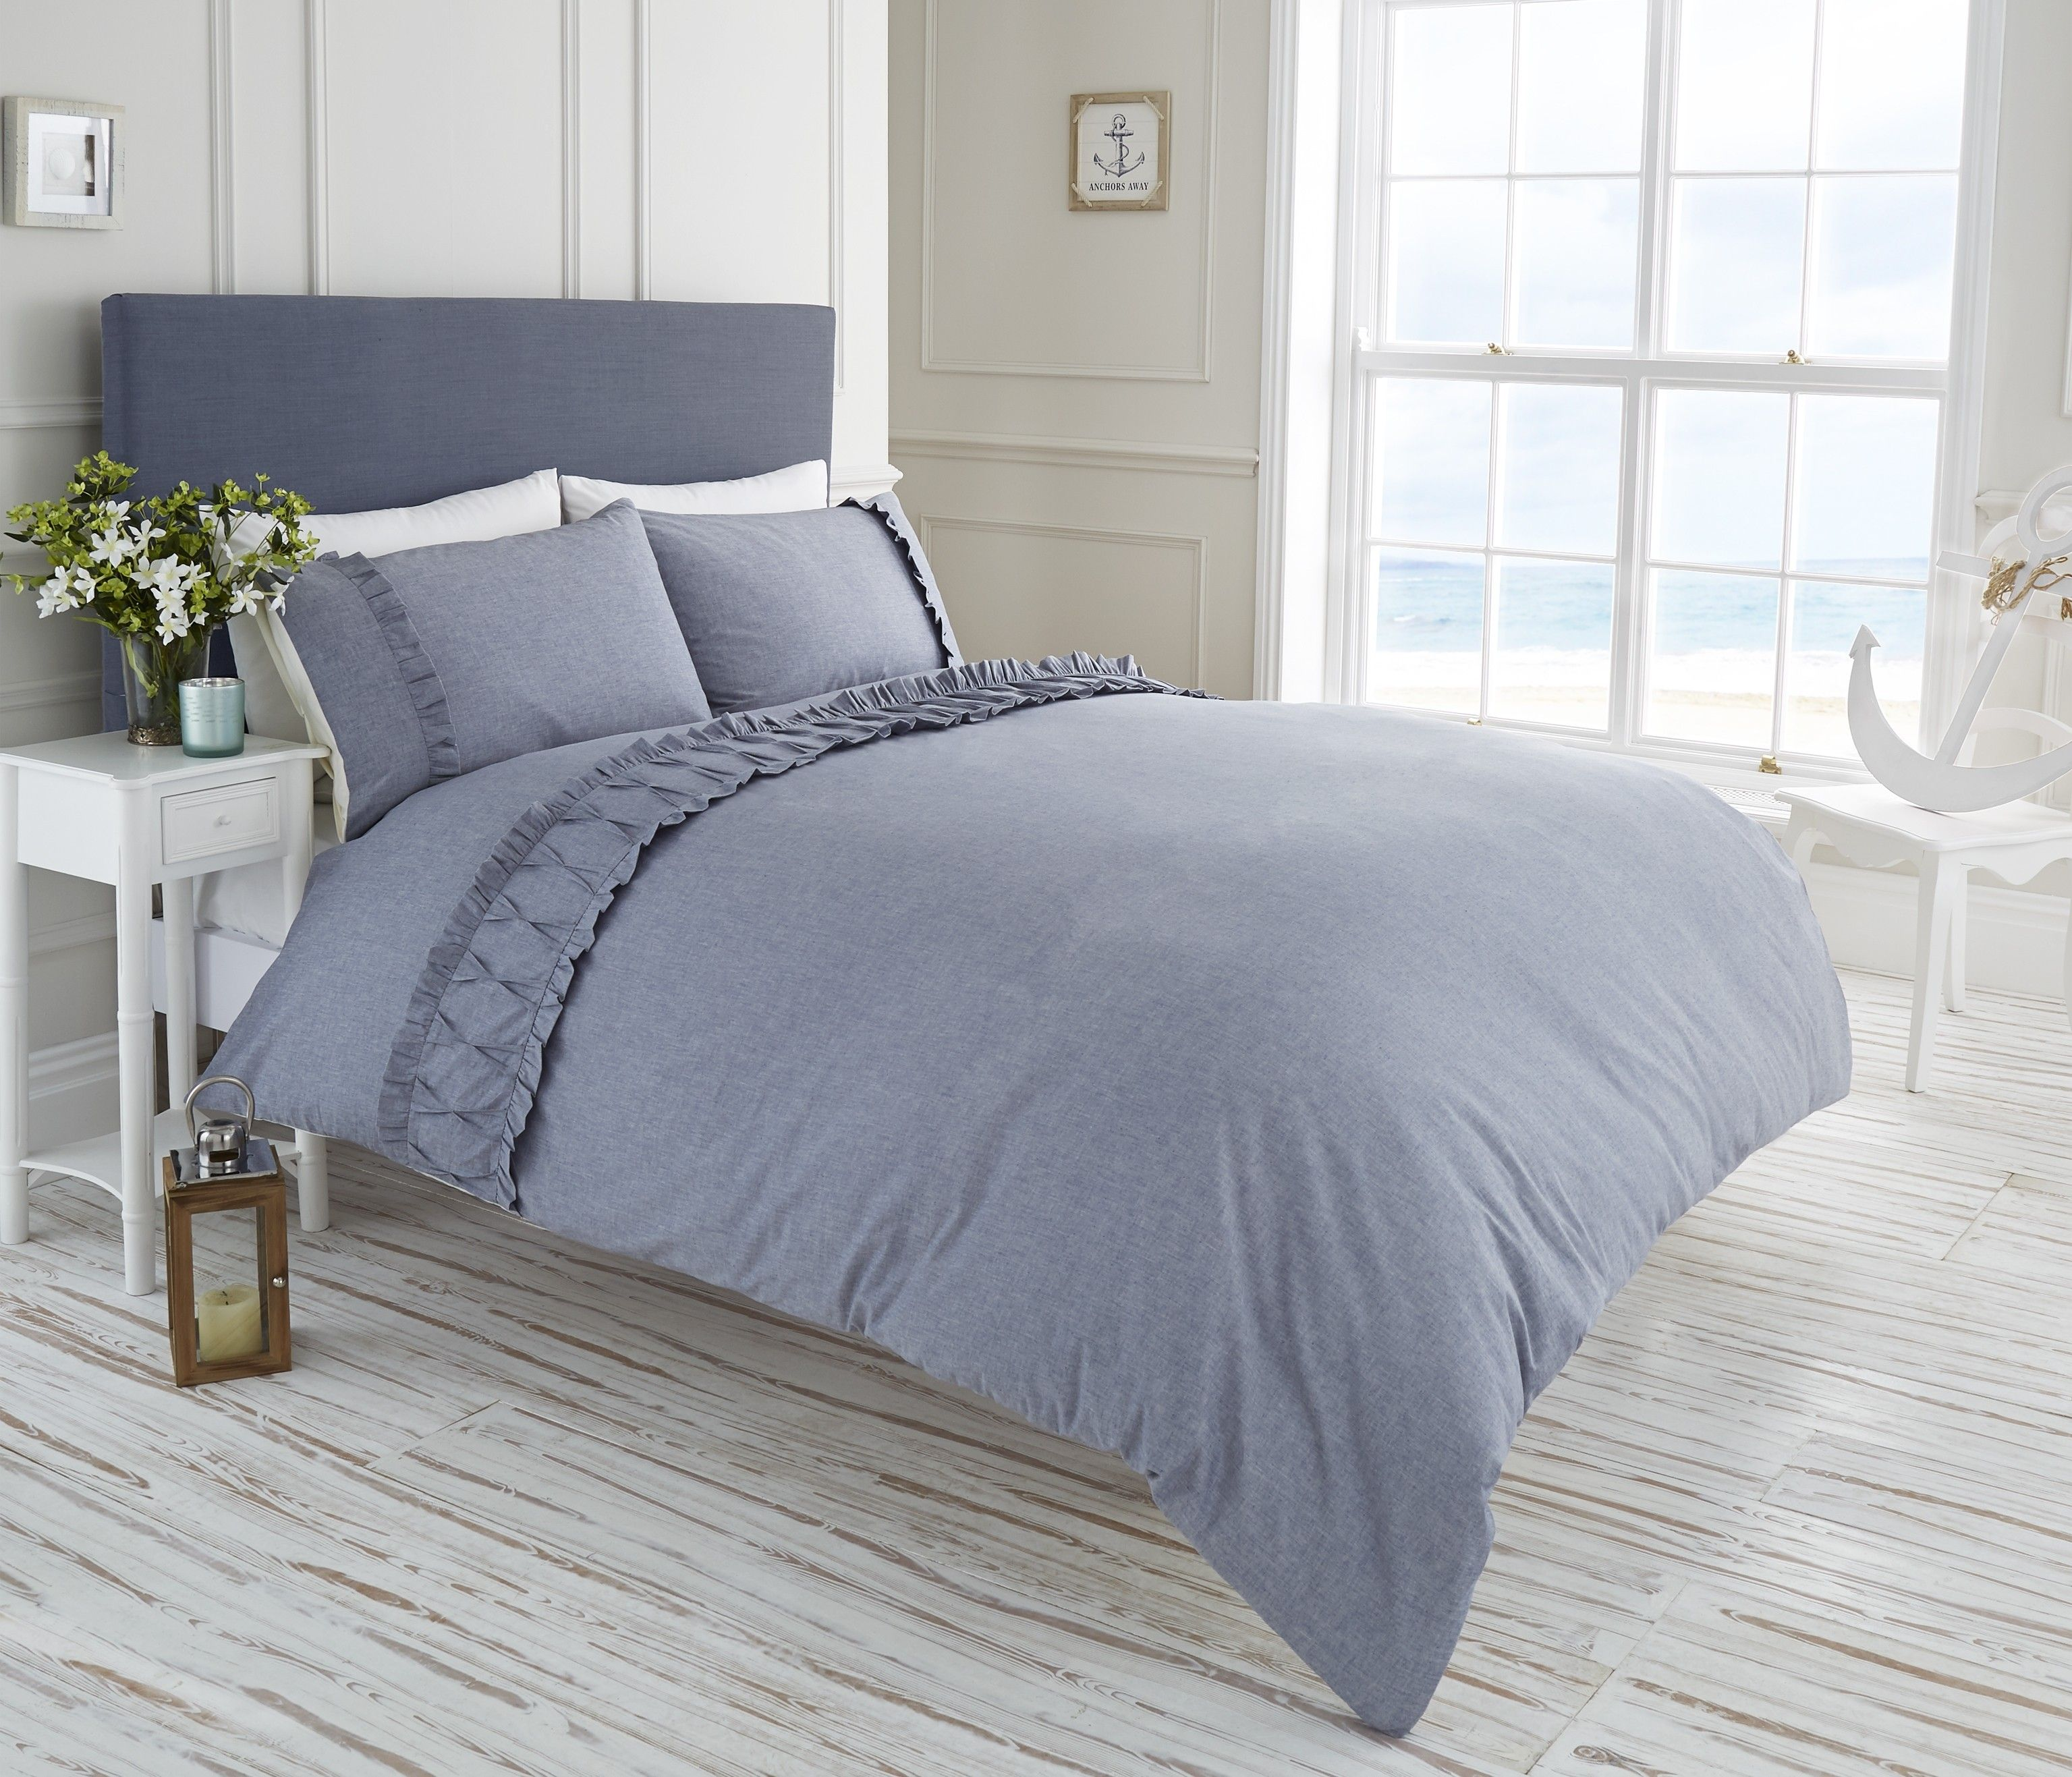 Life From Coloroll Monaco Chambray Duvet Set Denim | Ponden Homes  #Pondenhome #home #